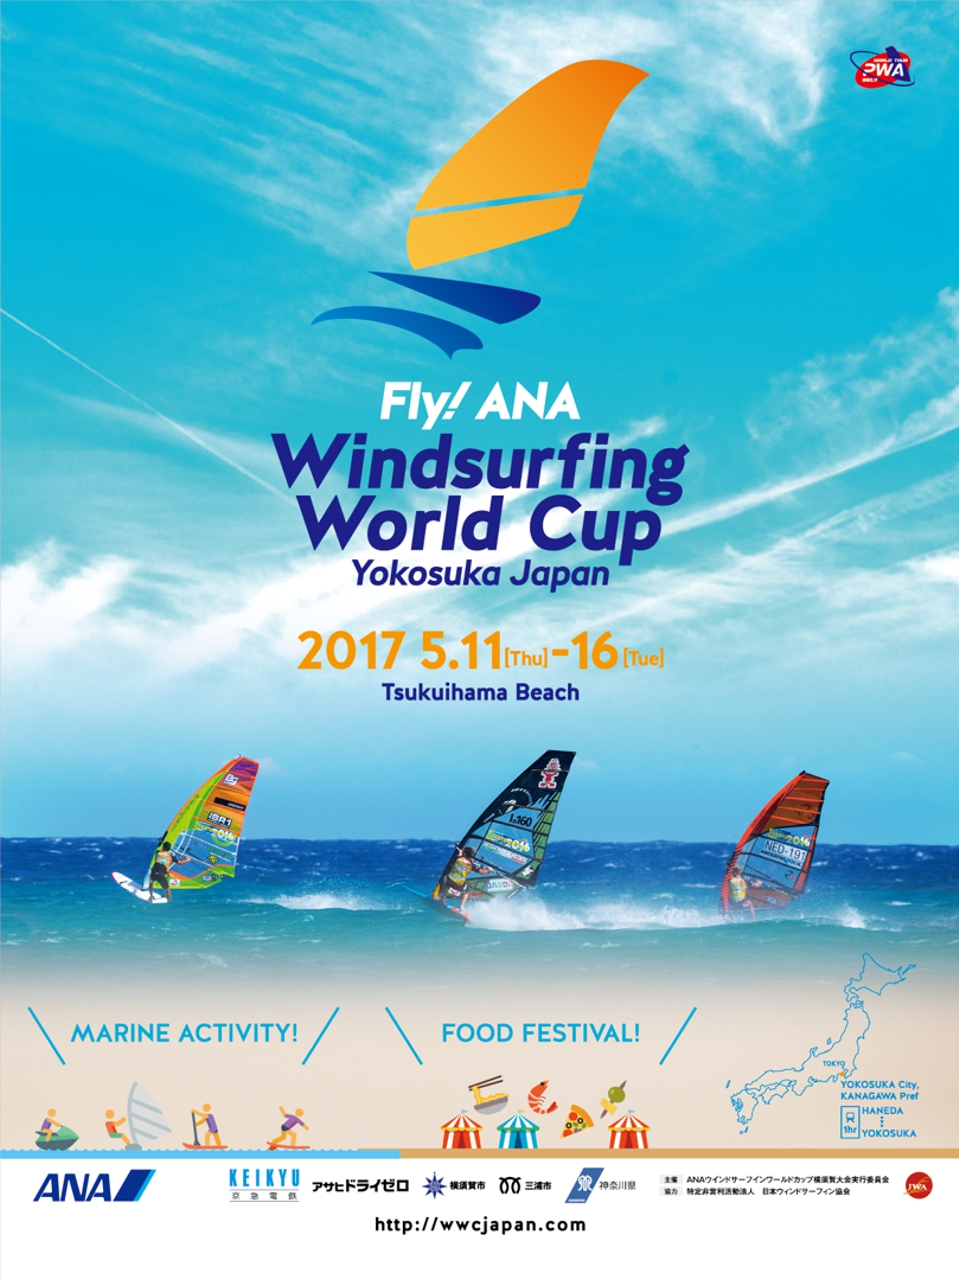 2017 Fly! ANA Windsurfing World Cup, Yokosuka, Japan